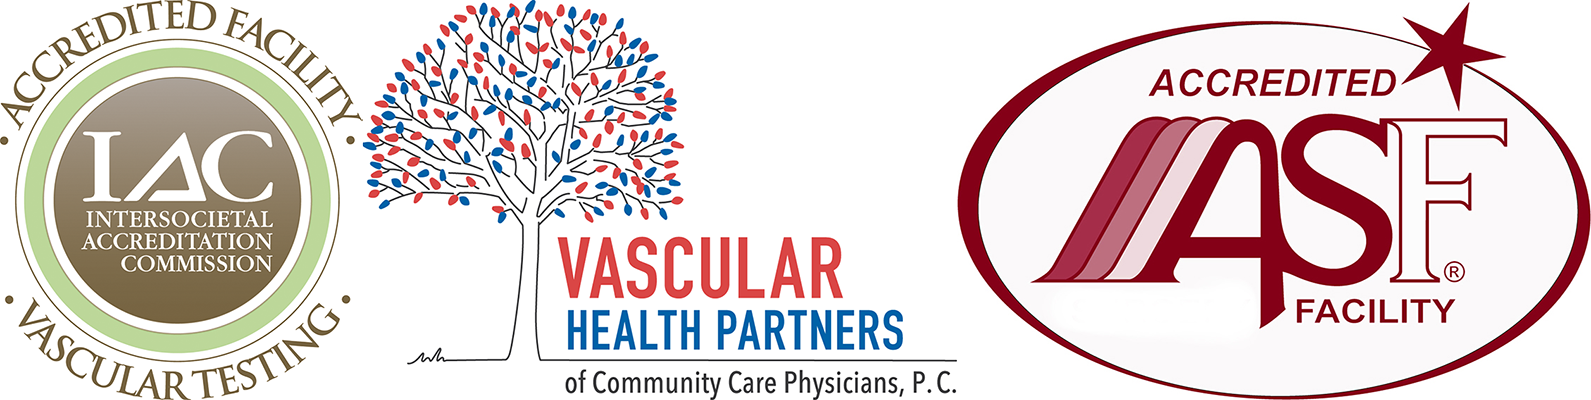 Vascular Health Partners Earns Two National Accreditations